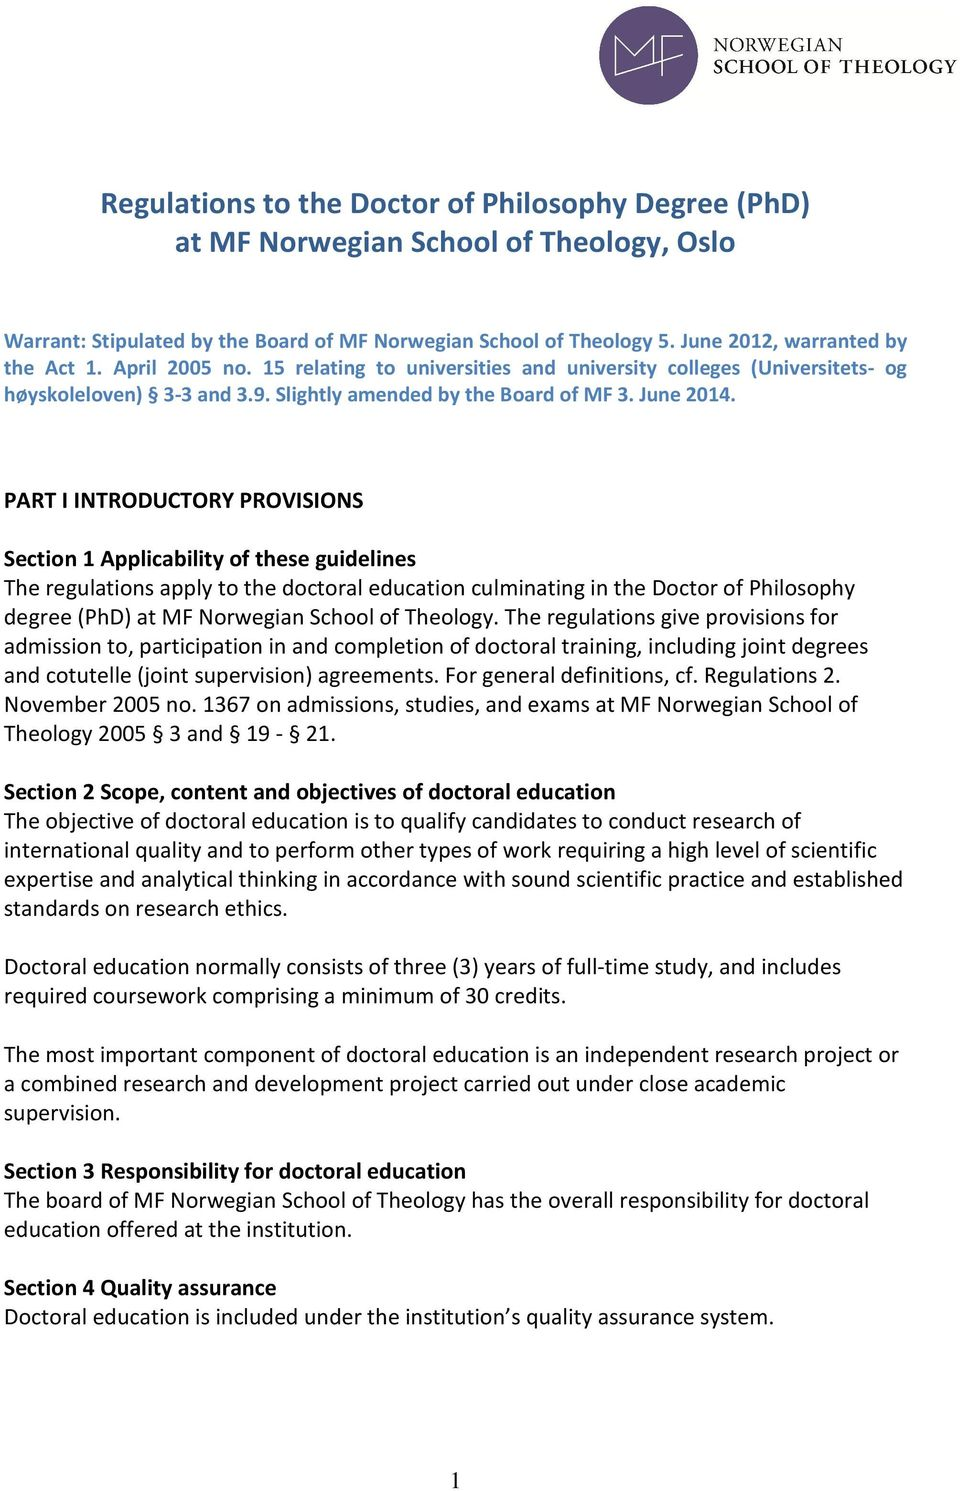 PART I INTRODUCTORY PROVISIONS Section 1 Applicability of these guidelines The regulations apply to the doctoral education culminating in the Doctor of Philosophy degree (PhD) at MF Norwegian School